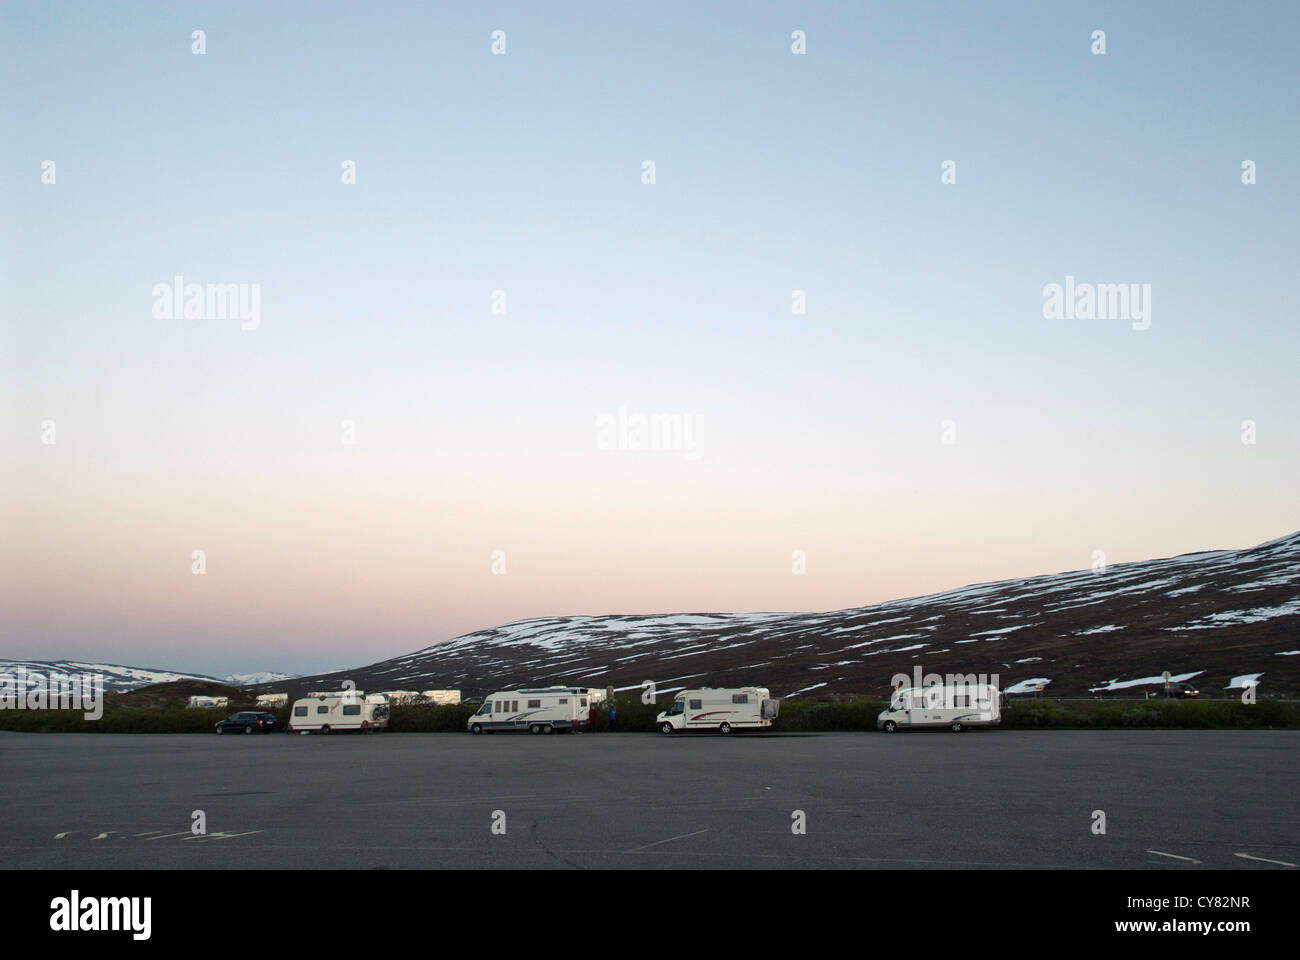 Camper cars on a car park on a Polar Circle in Norway. Stock Photo